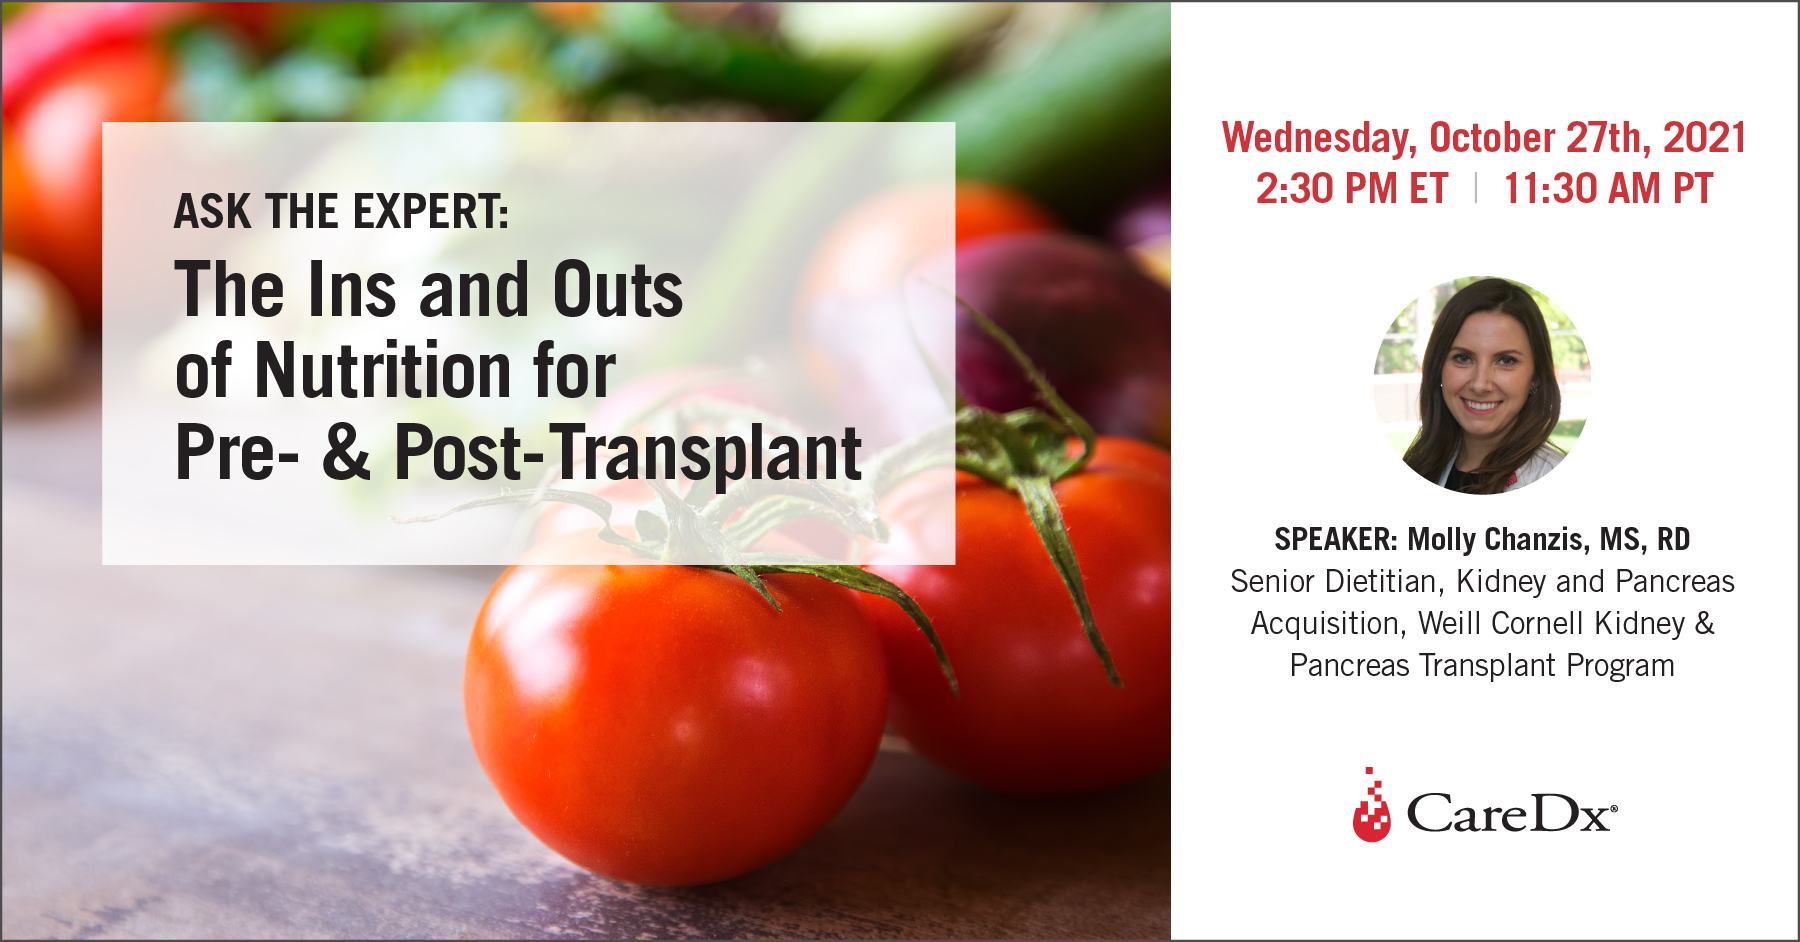 Ask the Expert: The Ins and Outs of Nutrition Pre- and Post-Transplant